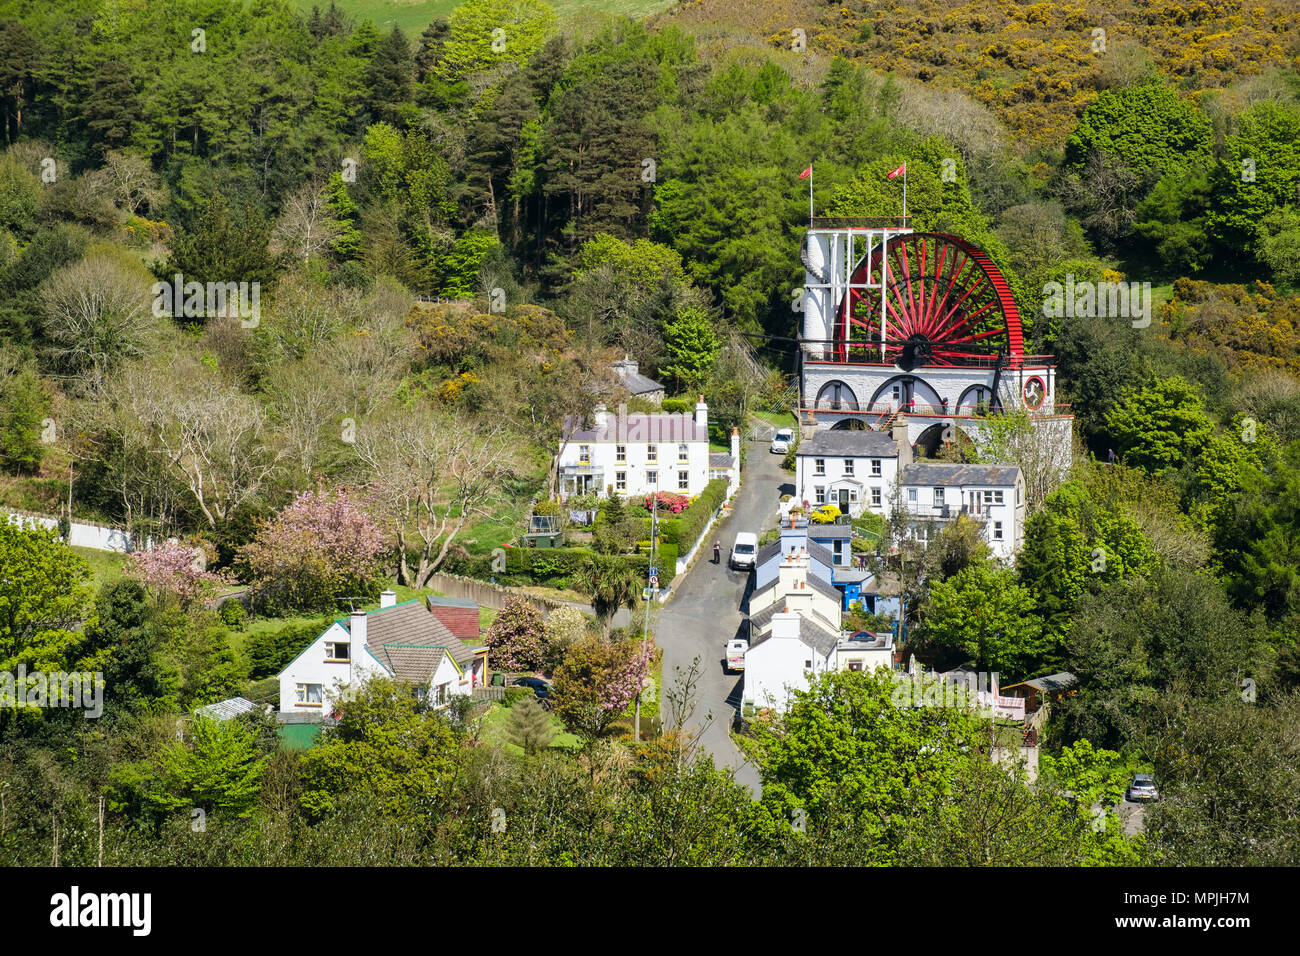 High view of Great Laxey Wheel and houses. Laxey, Isle of Man, British Isles Stock Photo